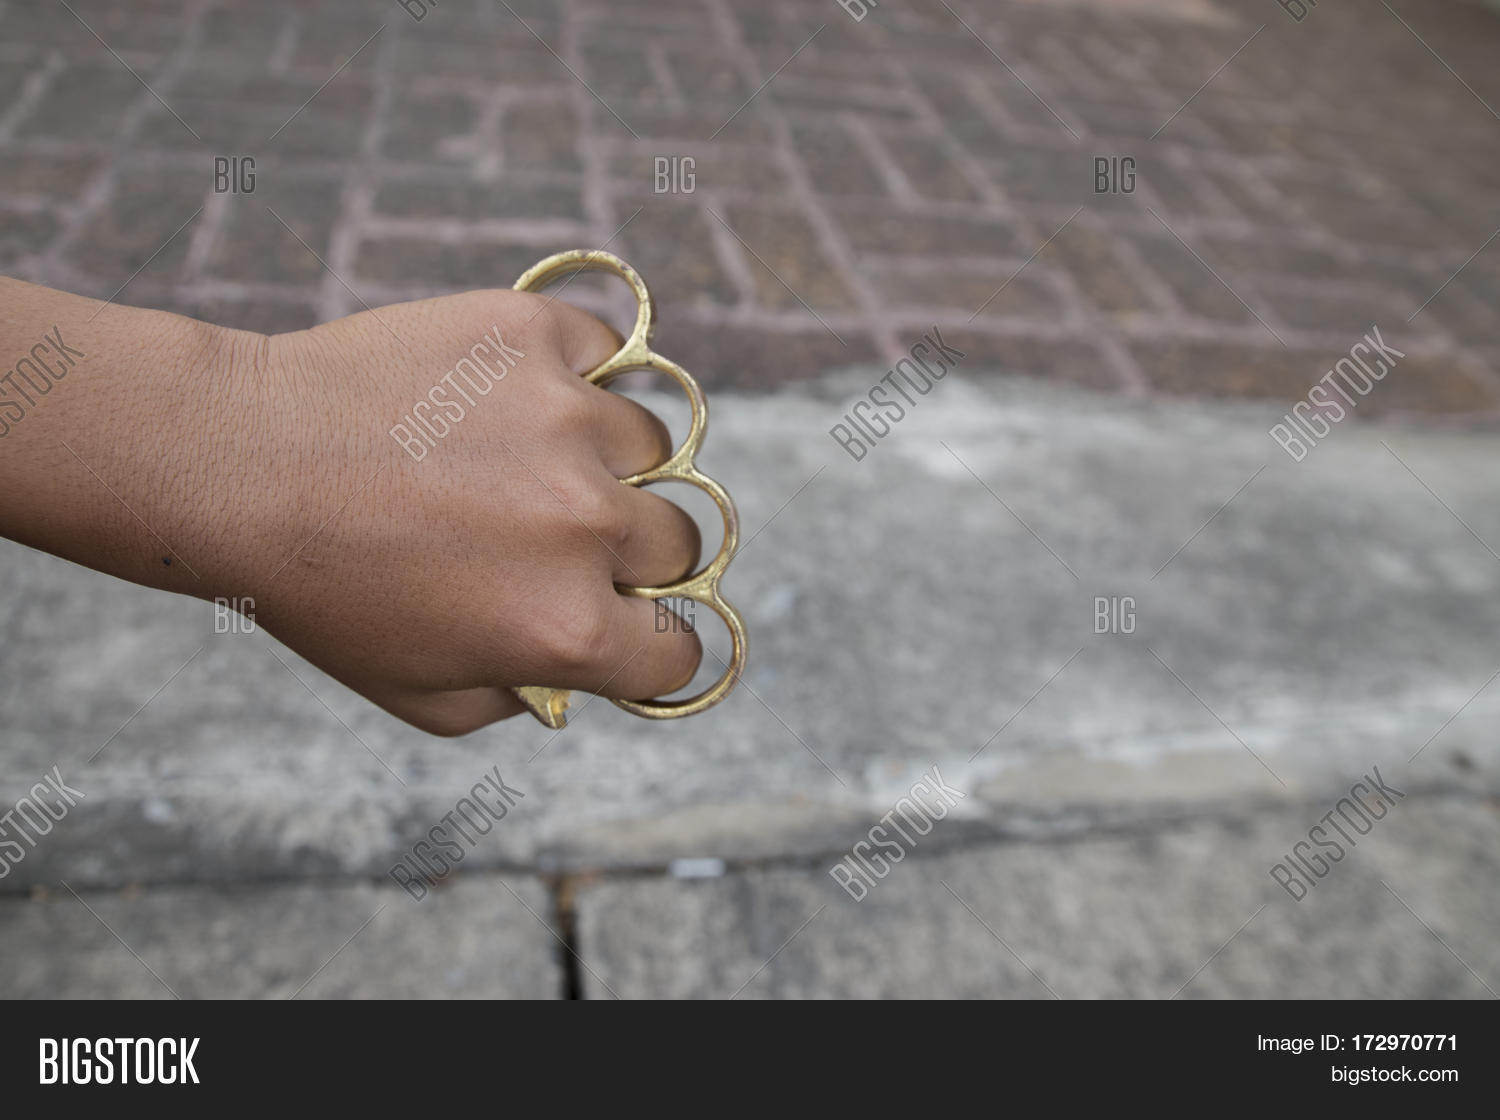 How to wear safely brass knuckles advise to wear for spring in 2019